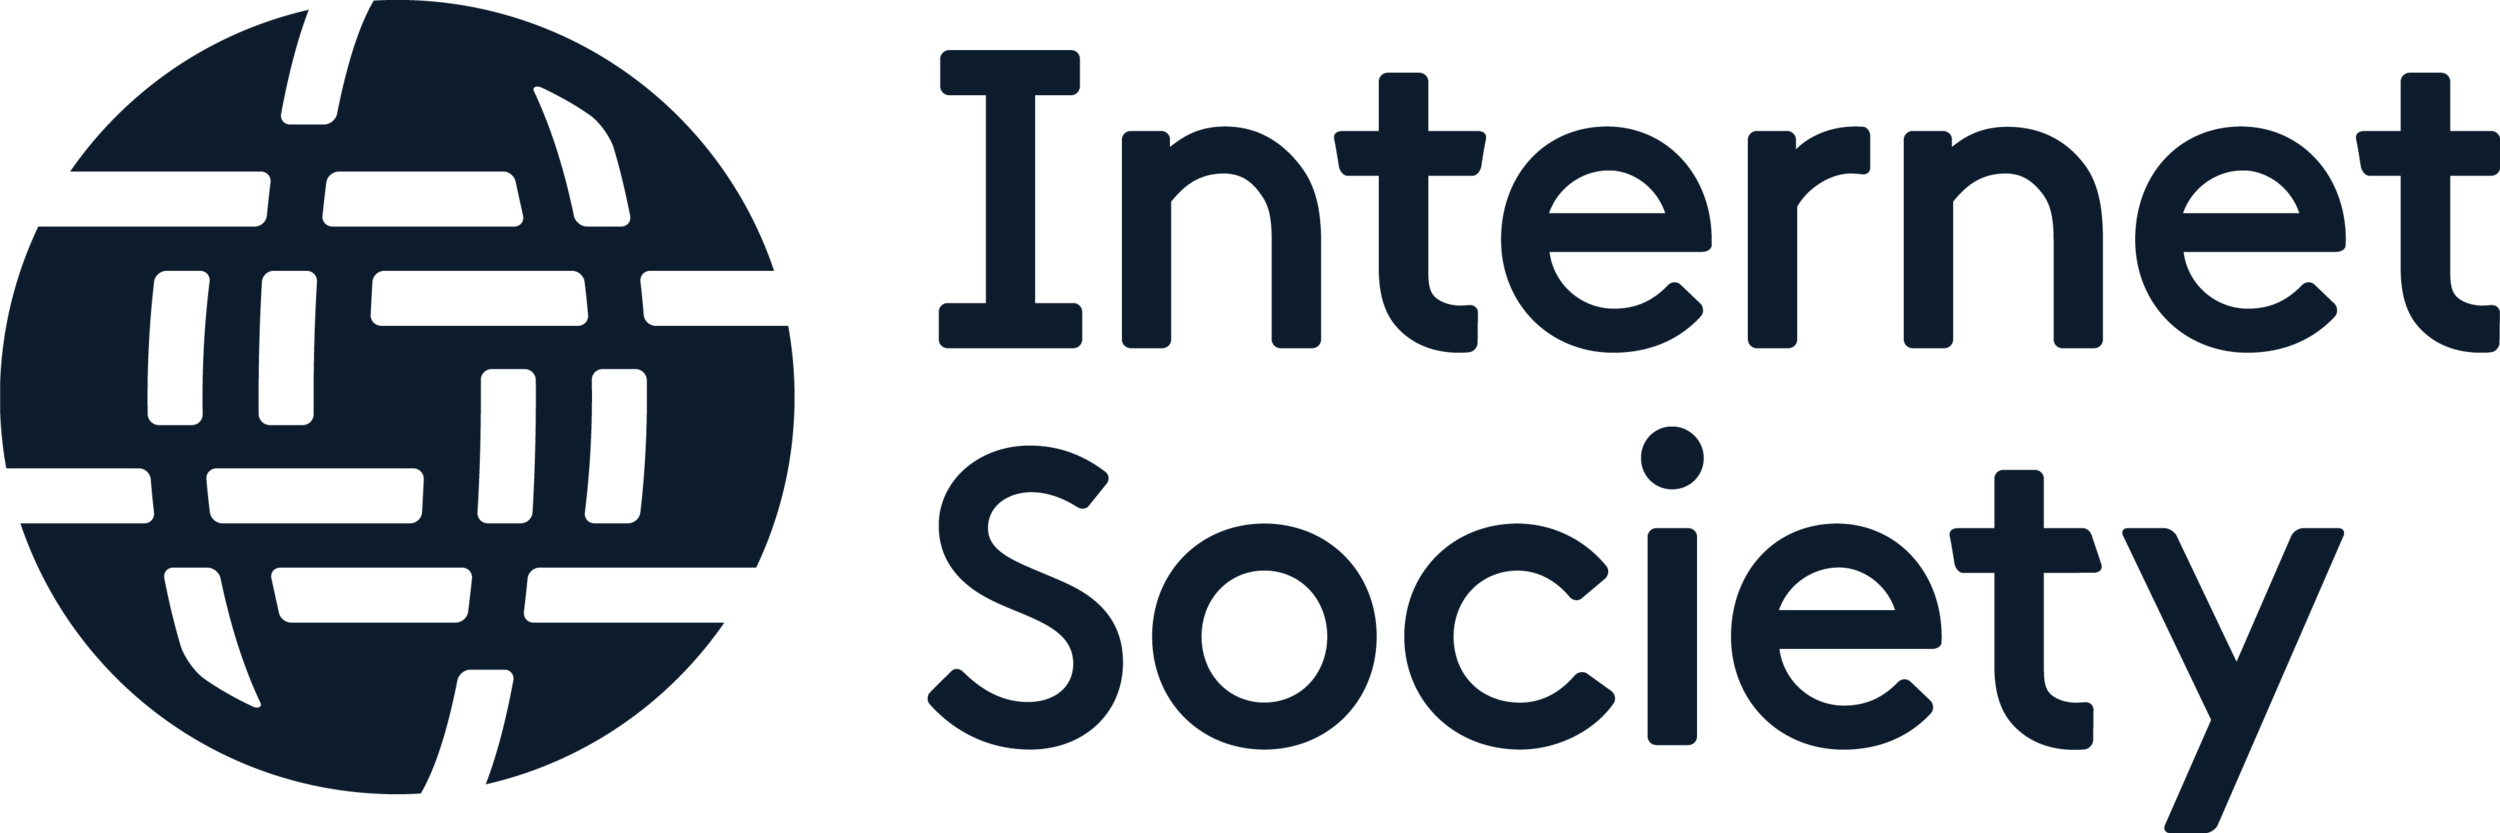 The Internet Society is a global cause-driven organization governed by a diverse Board of Trustees that is dedicated to ensuring that the Internet stays open, transparent and defined by you.  Our Vision  The Internet is for everyone.   Read about our mission .  Our Beginning  The Internet Society was founded in 1992 by a number of people involved with the Internet Engineering Task Force (IETF). From those early days, one of our principal rationales is to provide an organizational home for and financial support for the Internet standards process.   Read about how we started and our relationship with the IETF.